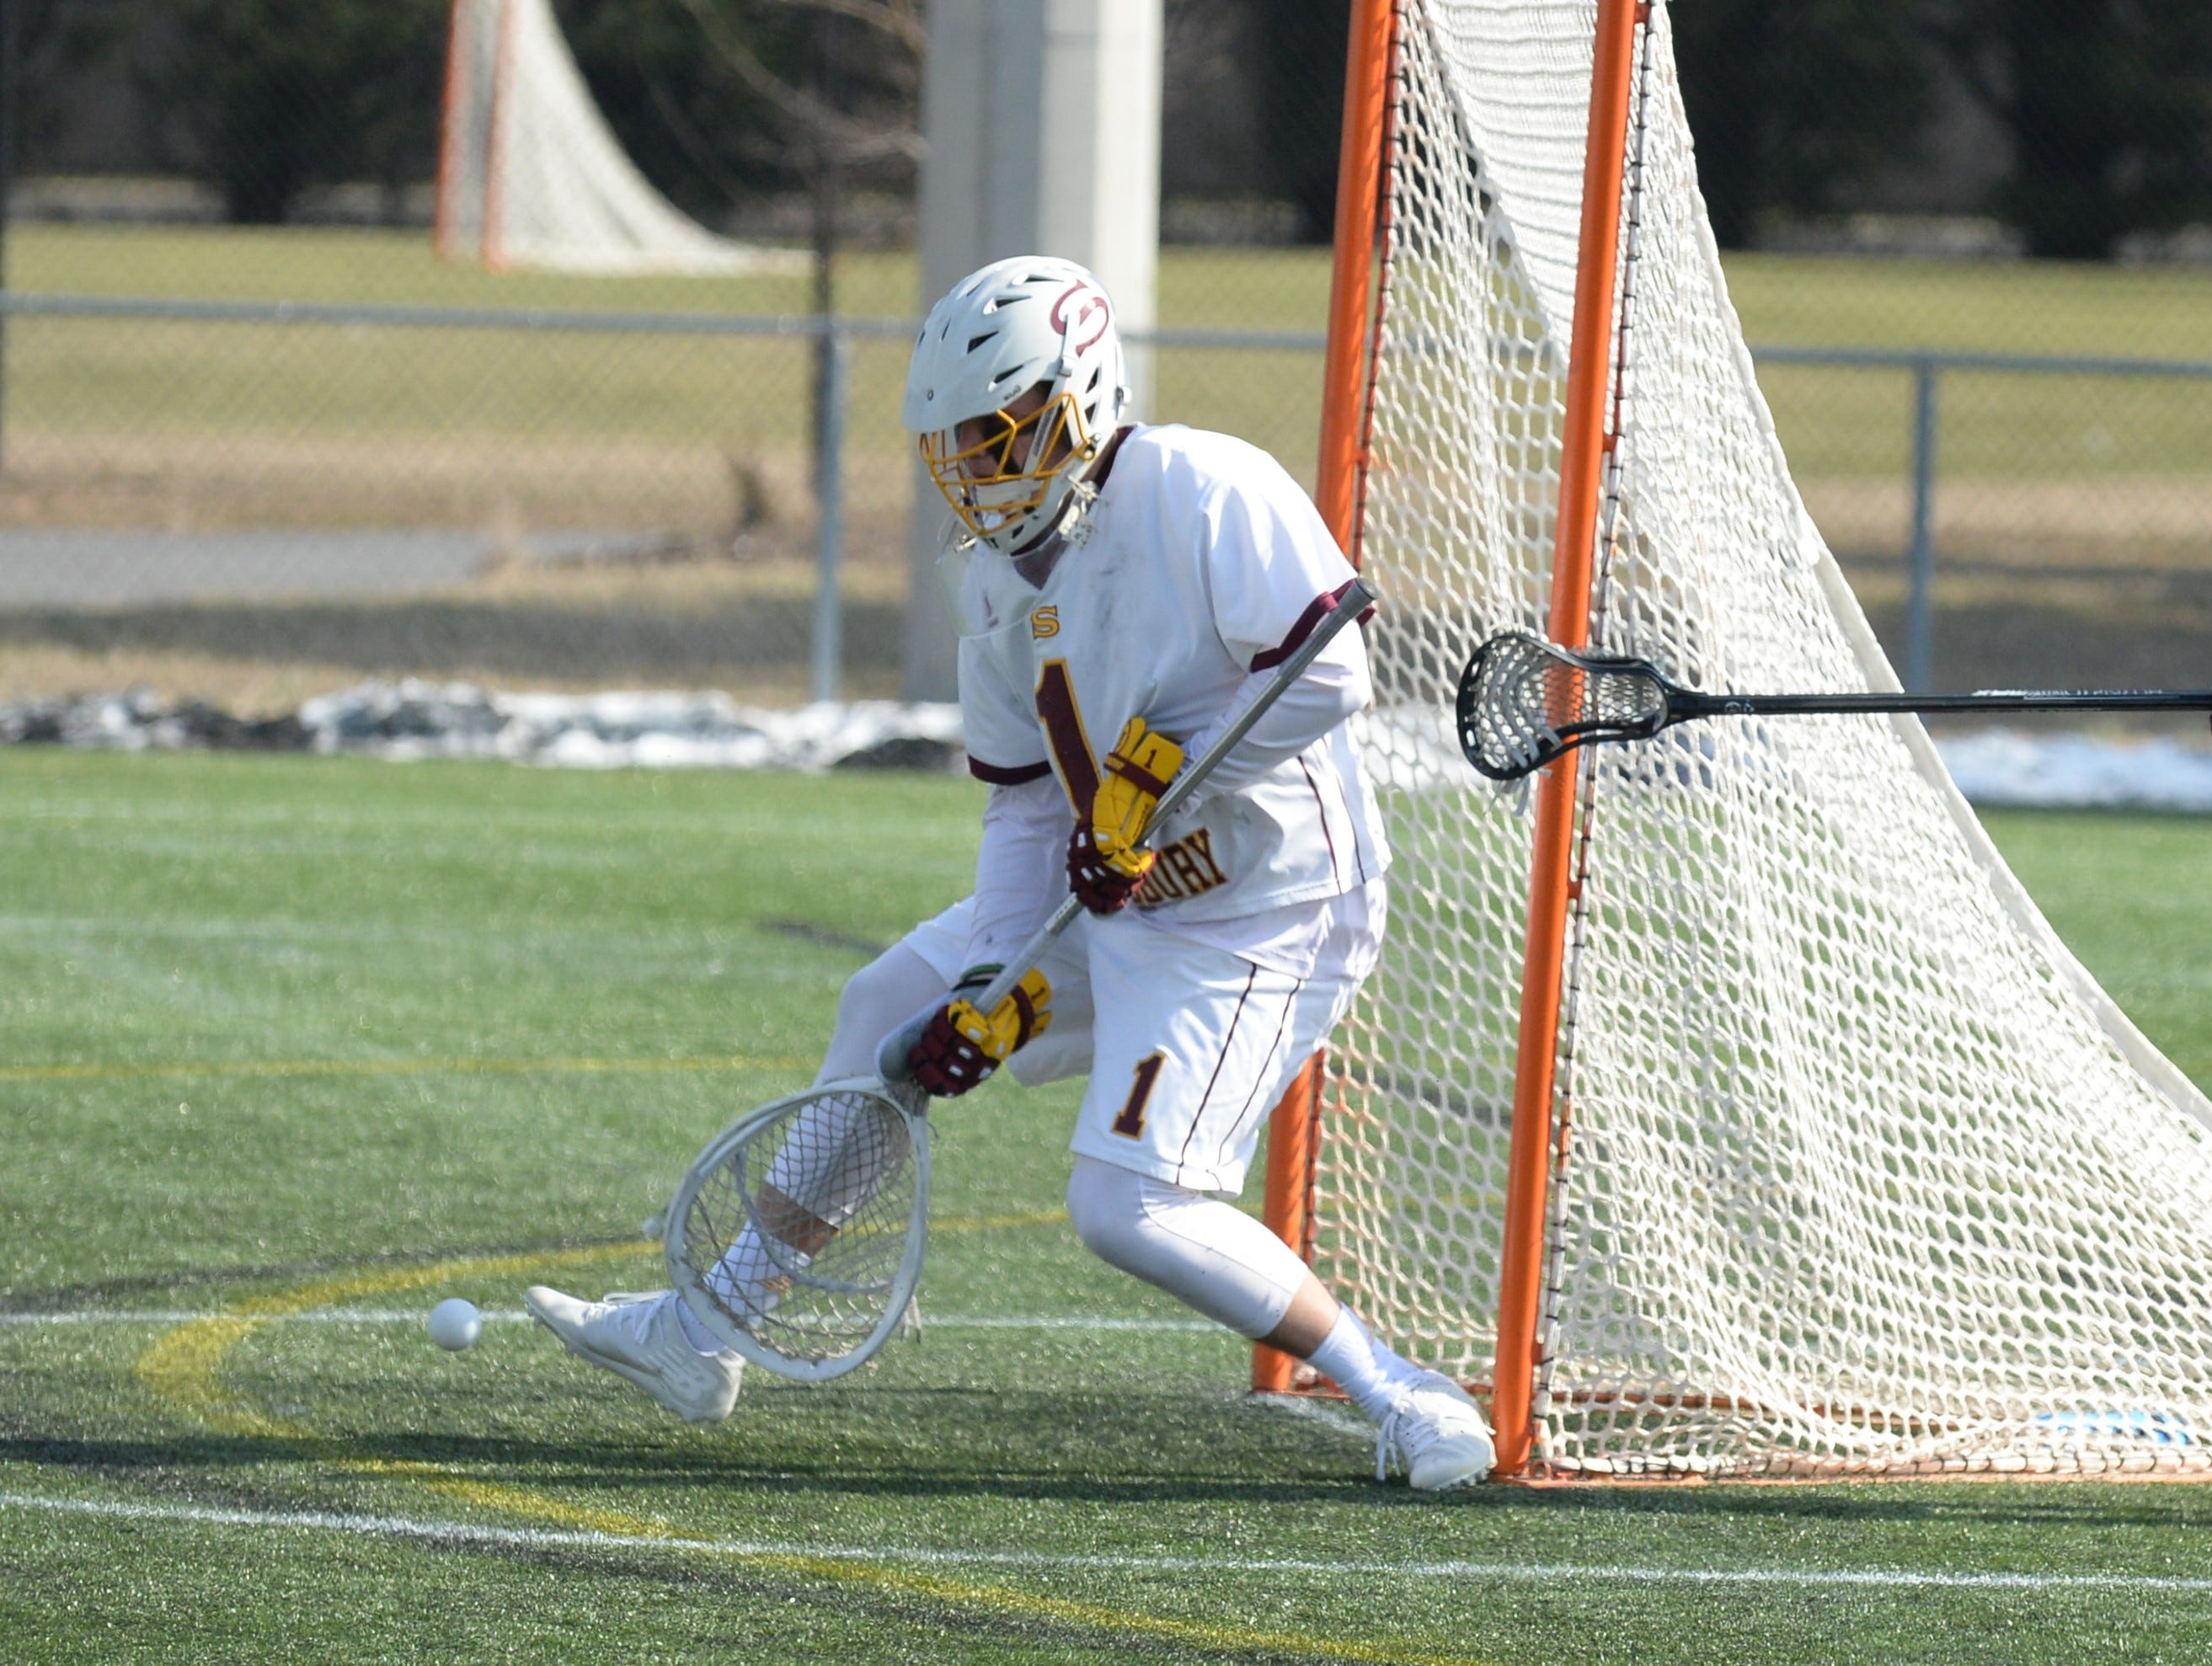 Salisbury University goalie Brandon Warren goes for a save against Berry College on Sunday, Feb. 3, 2019.